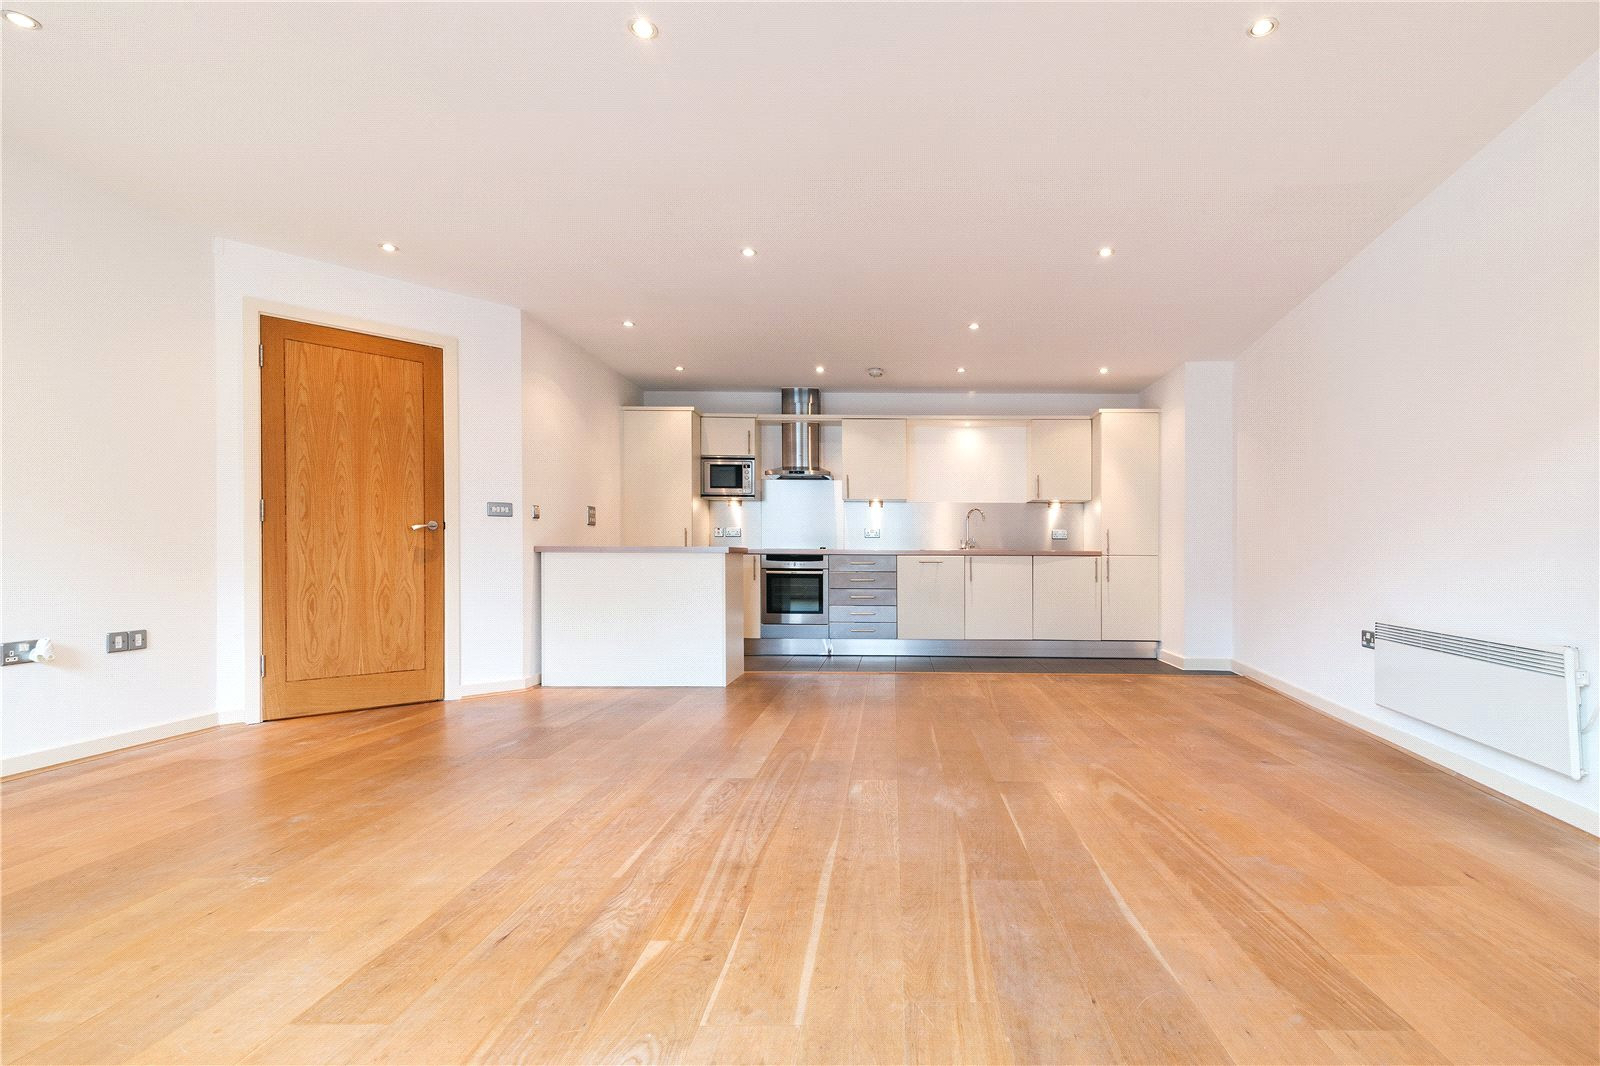 Places that Sell Hardwood Flooring Of 1 Bedroom Property for Sale In Dickinson Court 15 Brewhouse Yard Throughout 1 Bedroom Property for Sale In Dickinson Court 15 Brewhouse Yard London Ec1v A699000